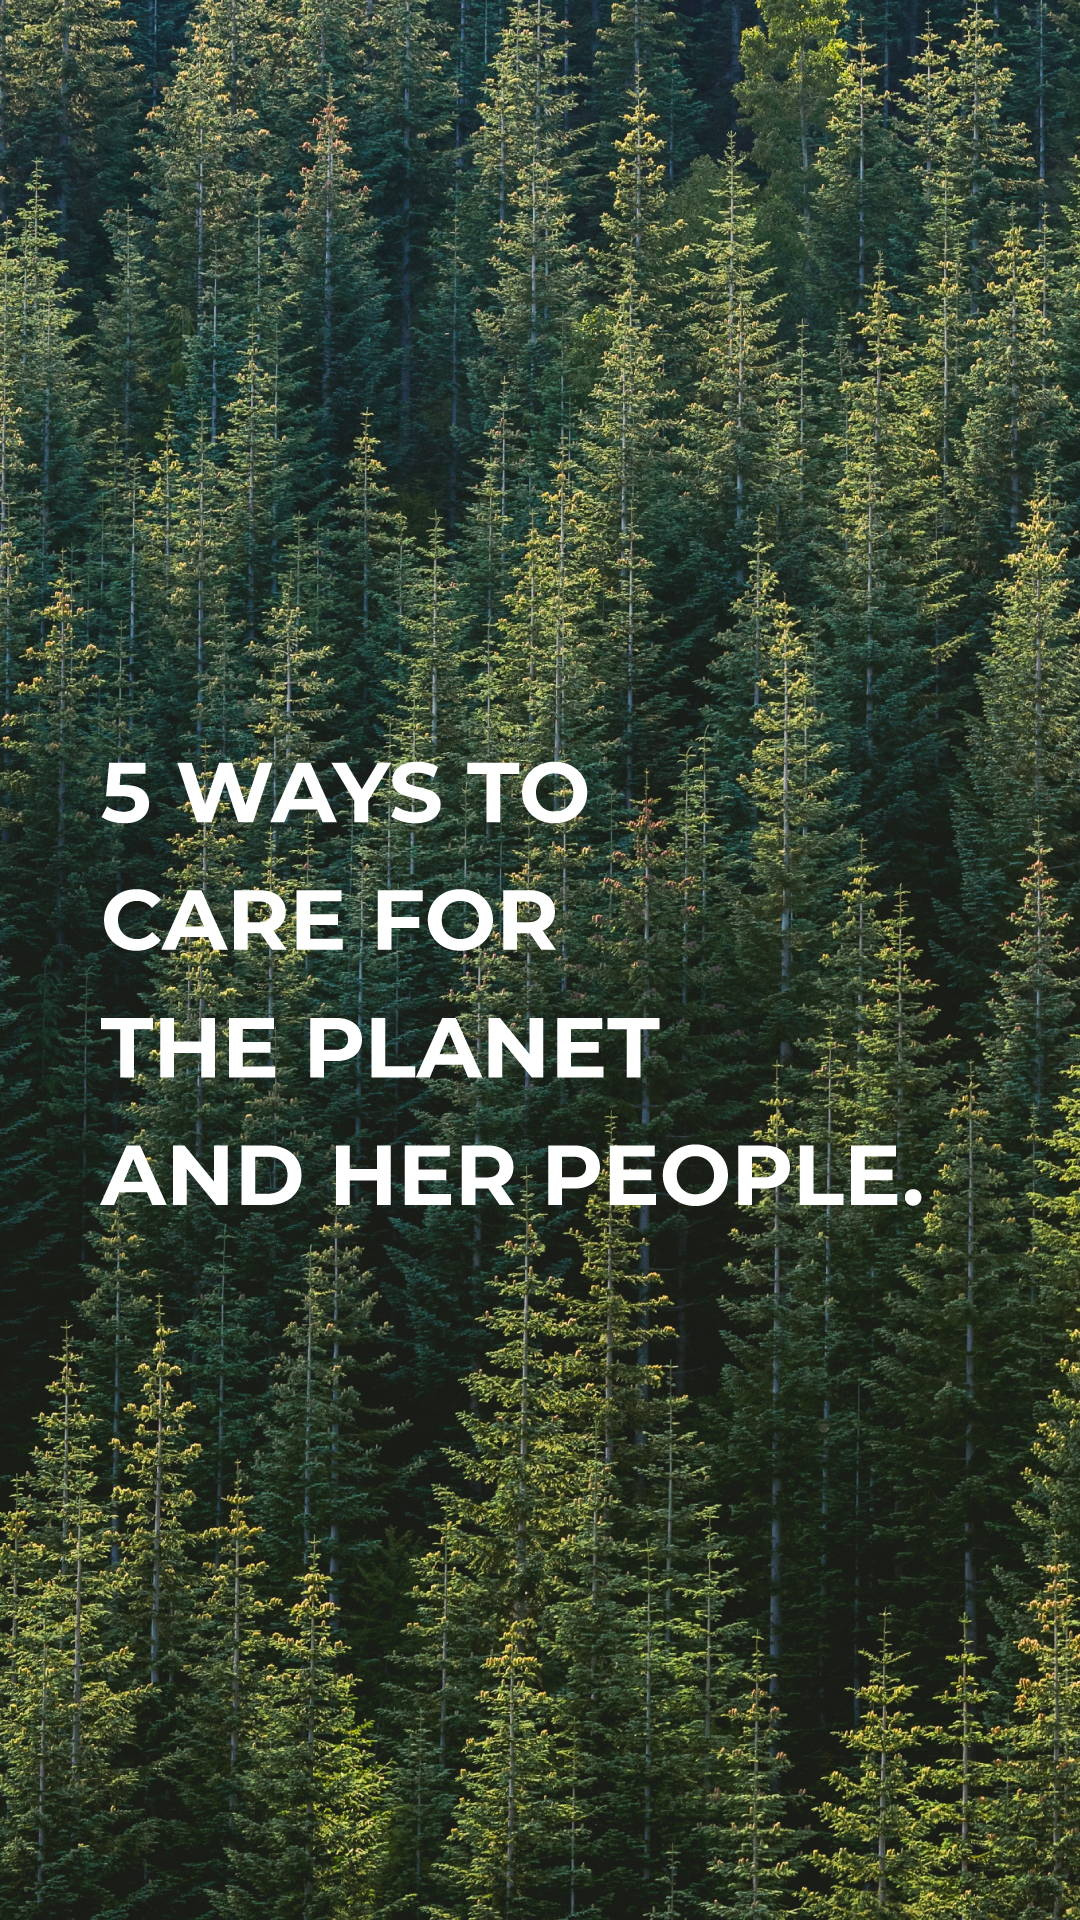 ways to care for the planet and her people